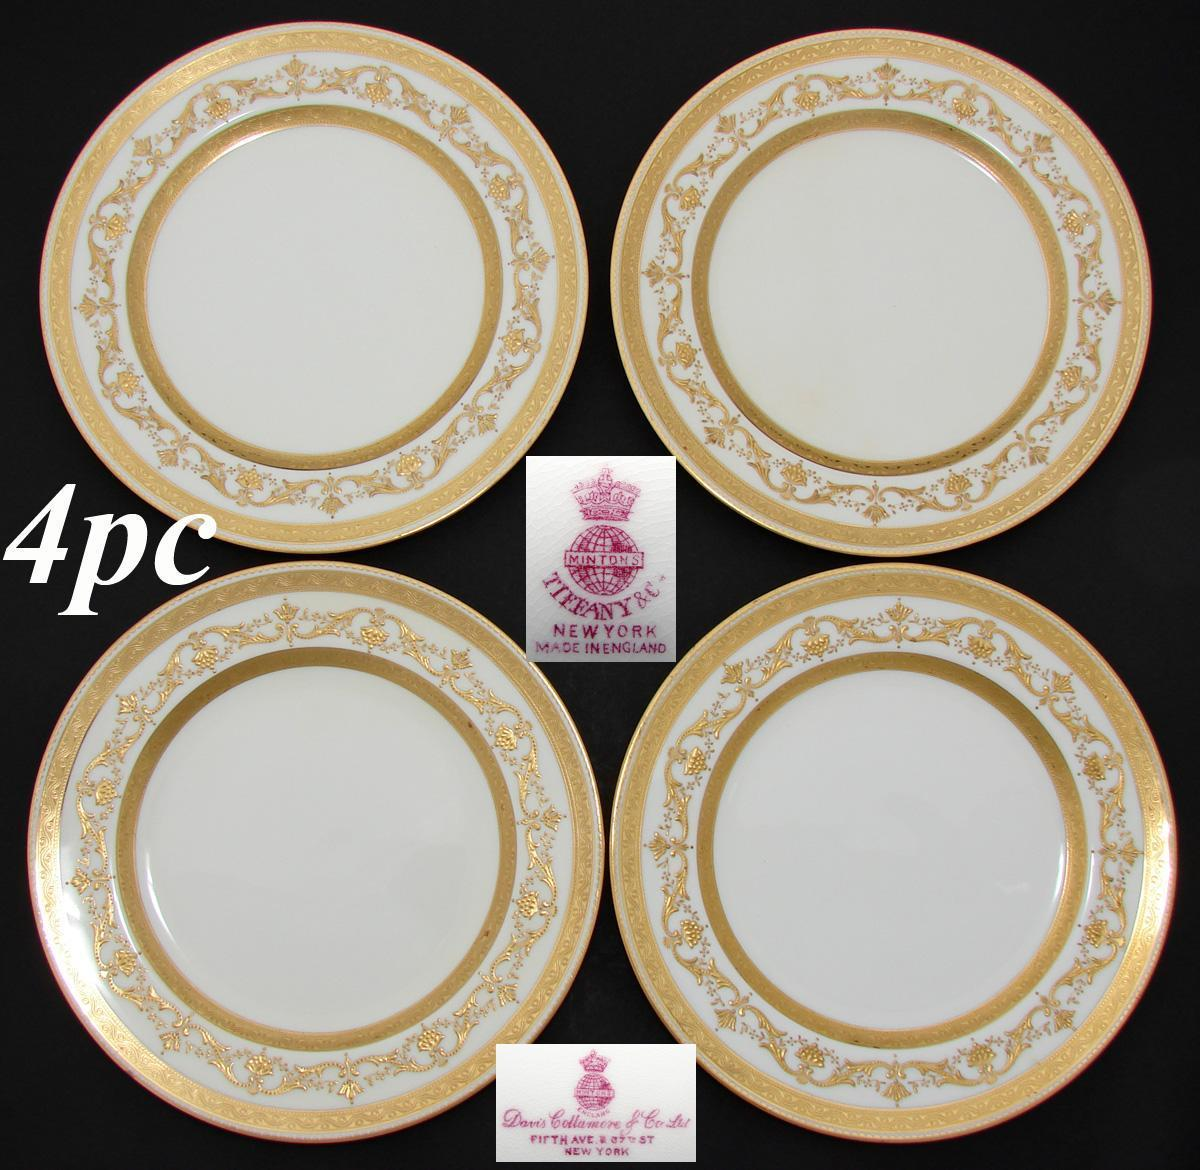 "Set of 4 Antique Minton 8.75"" Plates, Elegant Raised & Encrusted Gold Enamel, Tiffany & Co."